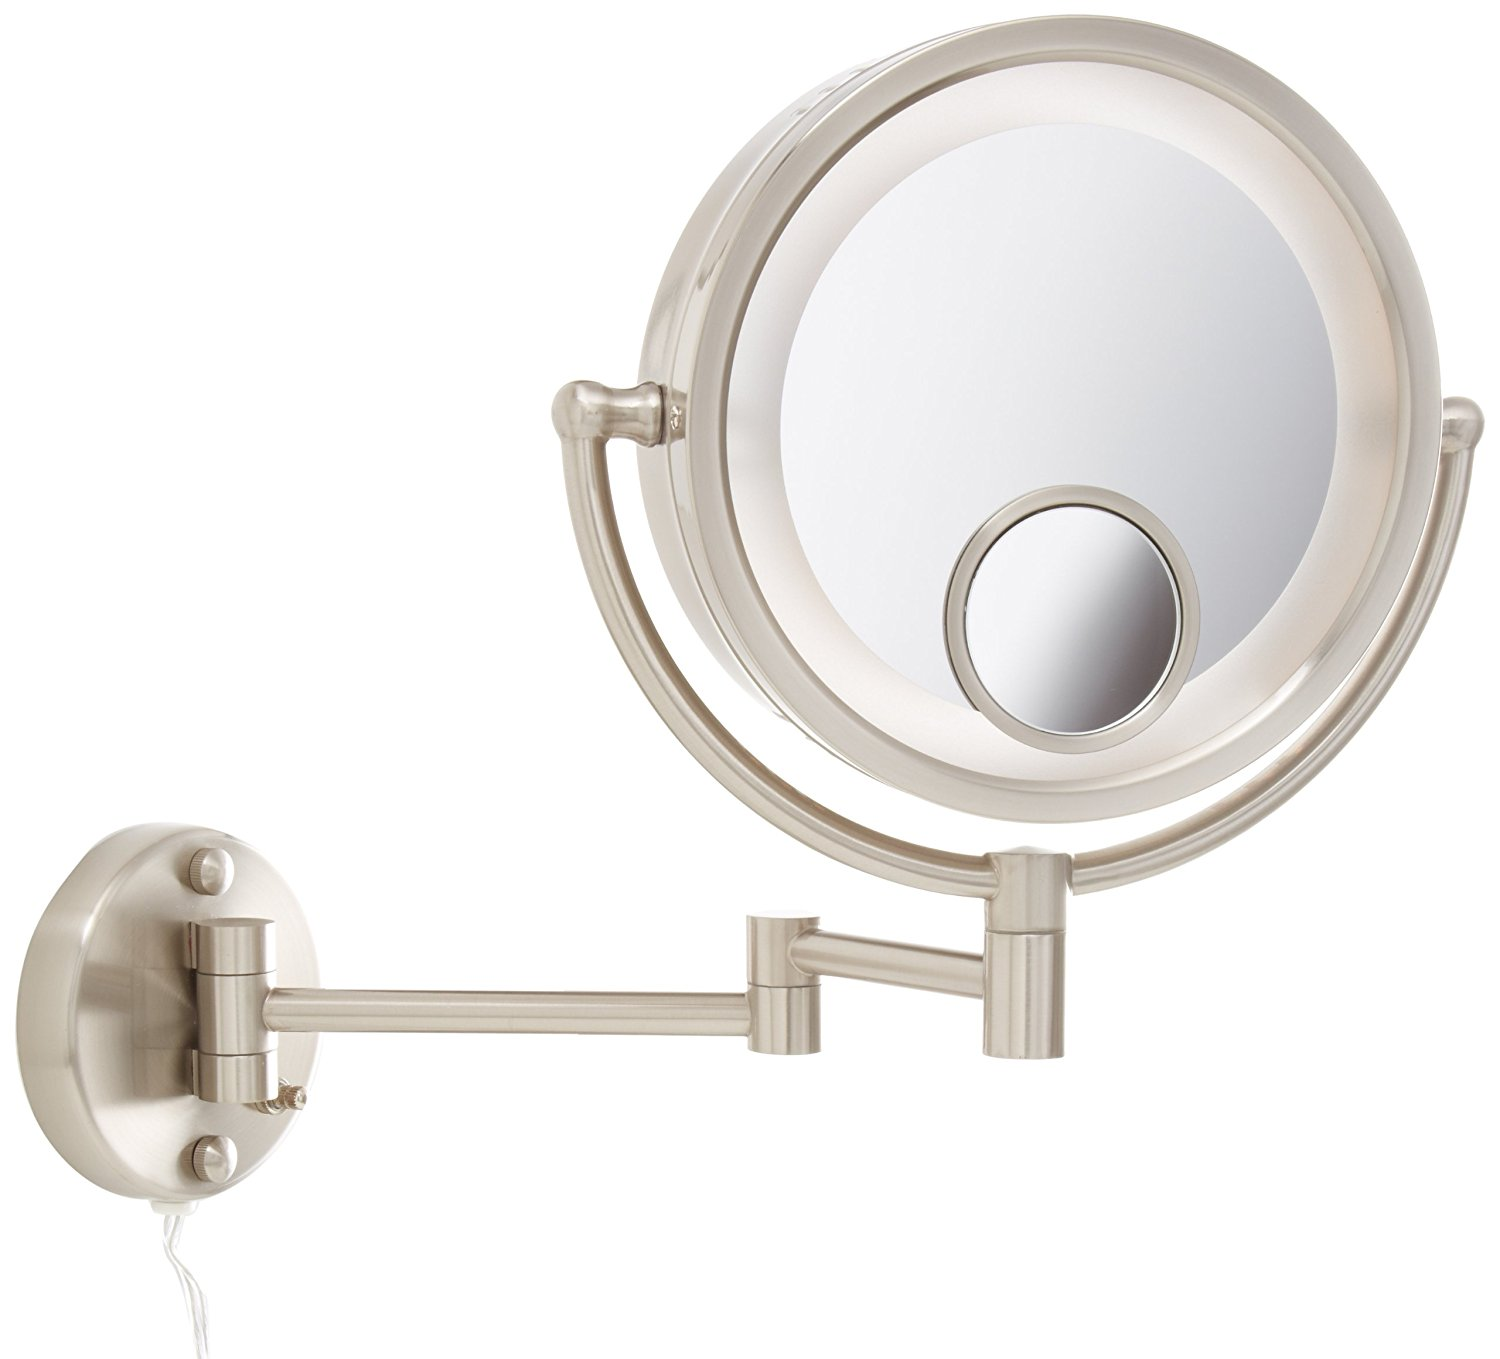 Best Lighted Makeup Mirror | 10x Mirror | Best Lighted Makeup Mirror Reviews